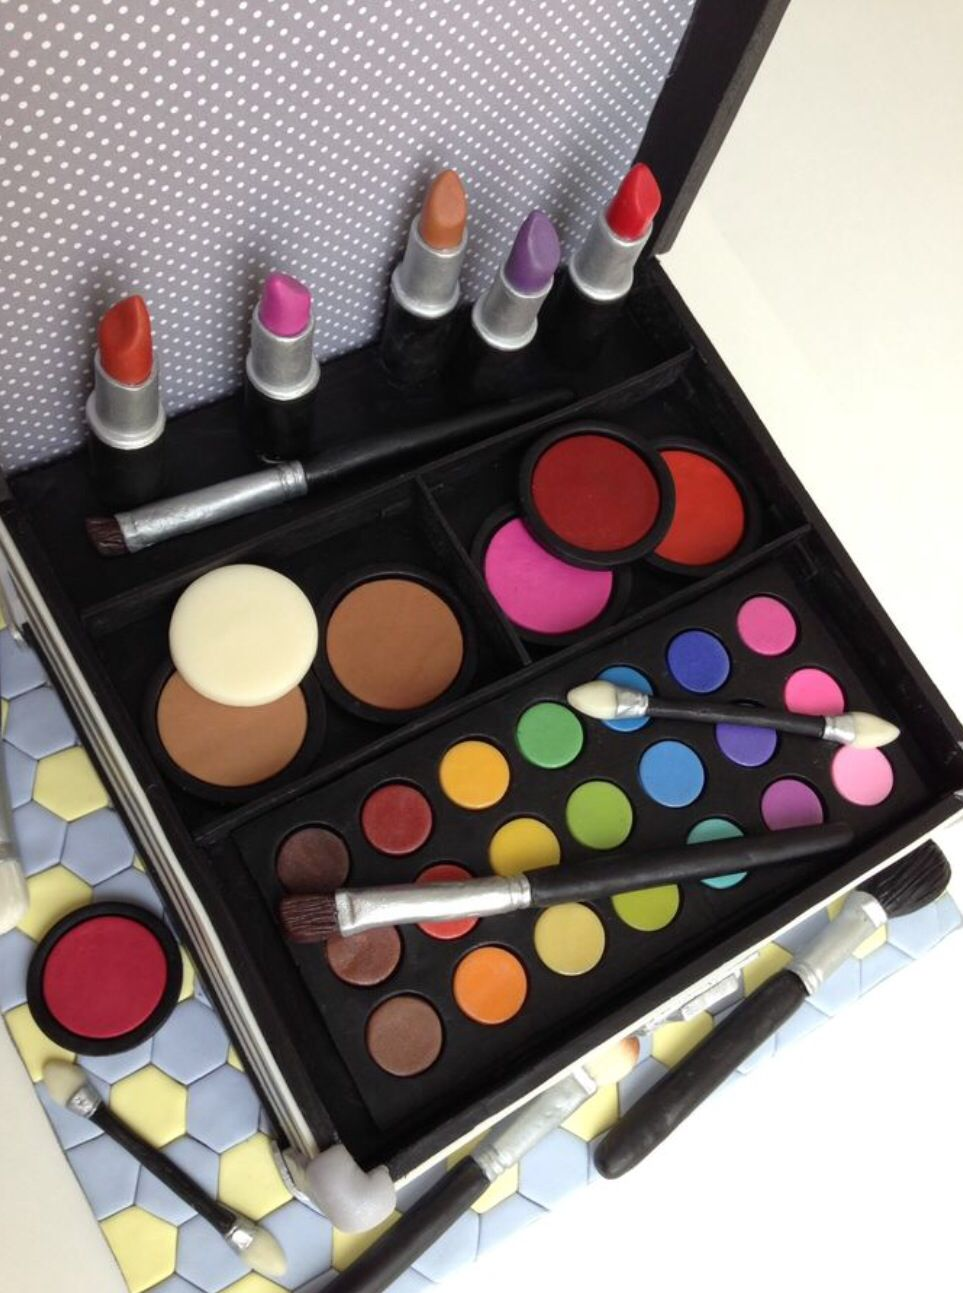 For all the Mac makeup lovers. Make up box cake. Wow what